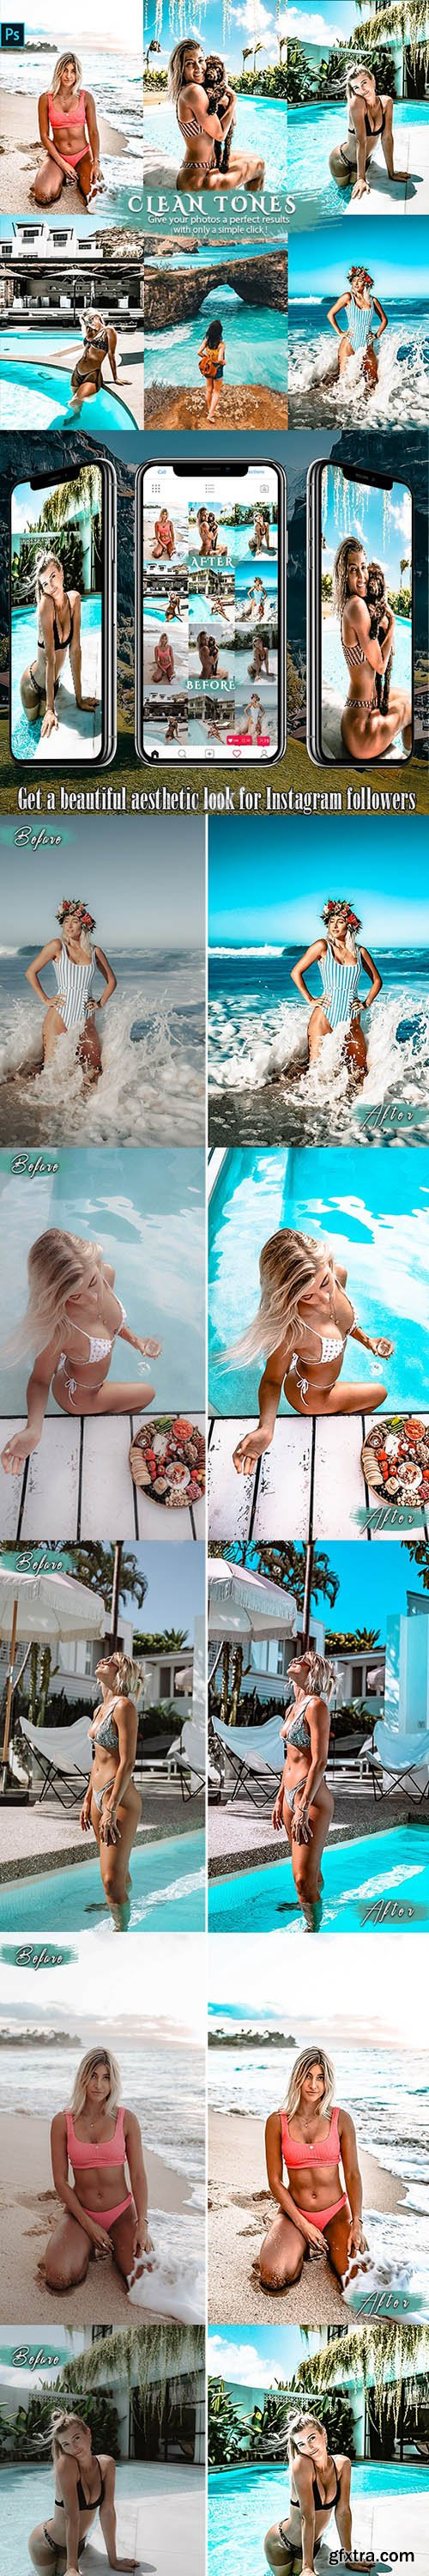 GraphicRiver - Clean Effects Travel Photoshop Actions 26039562